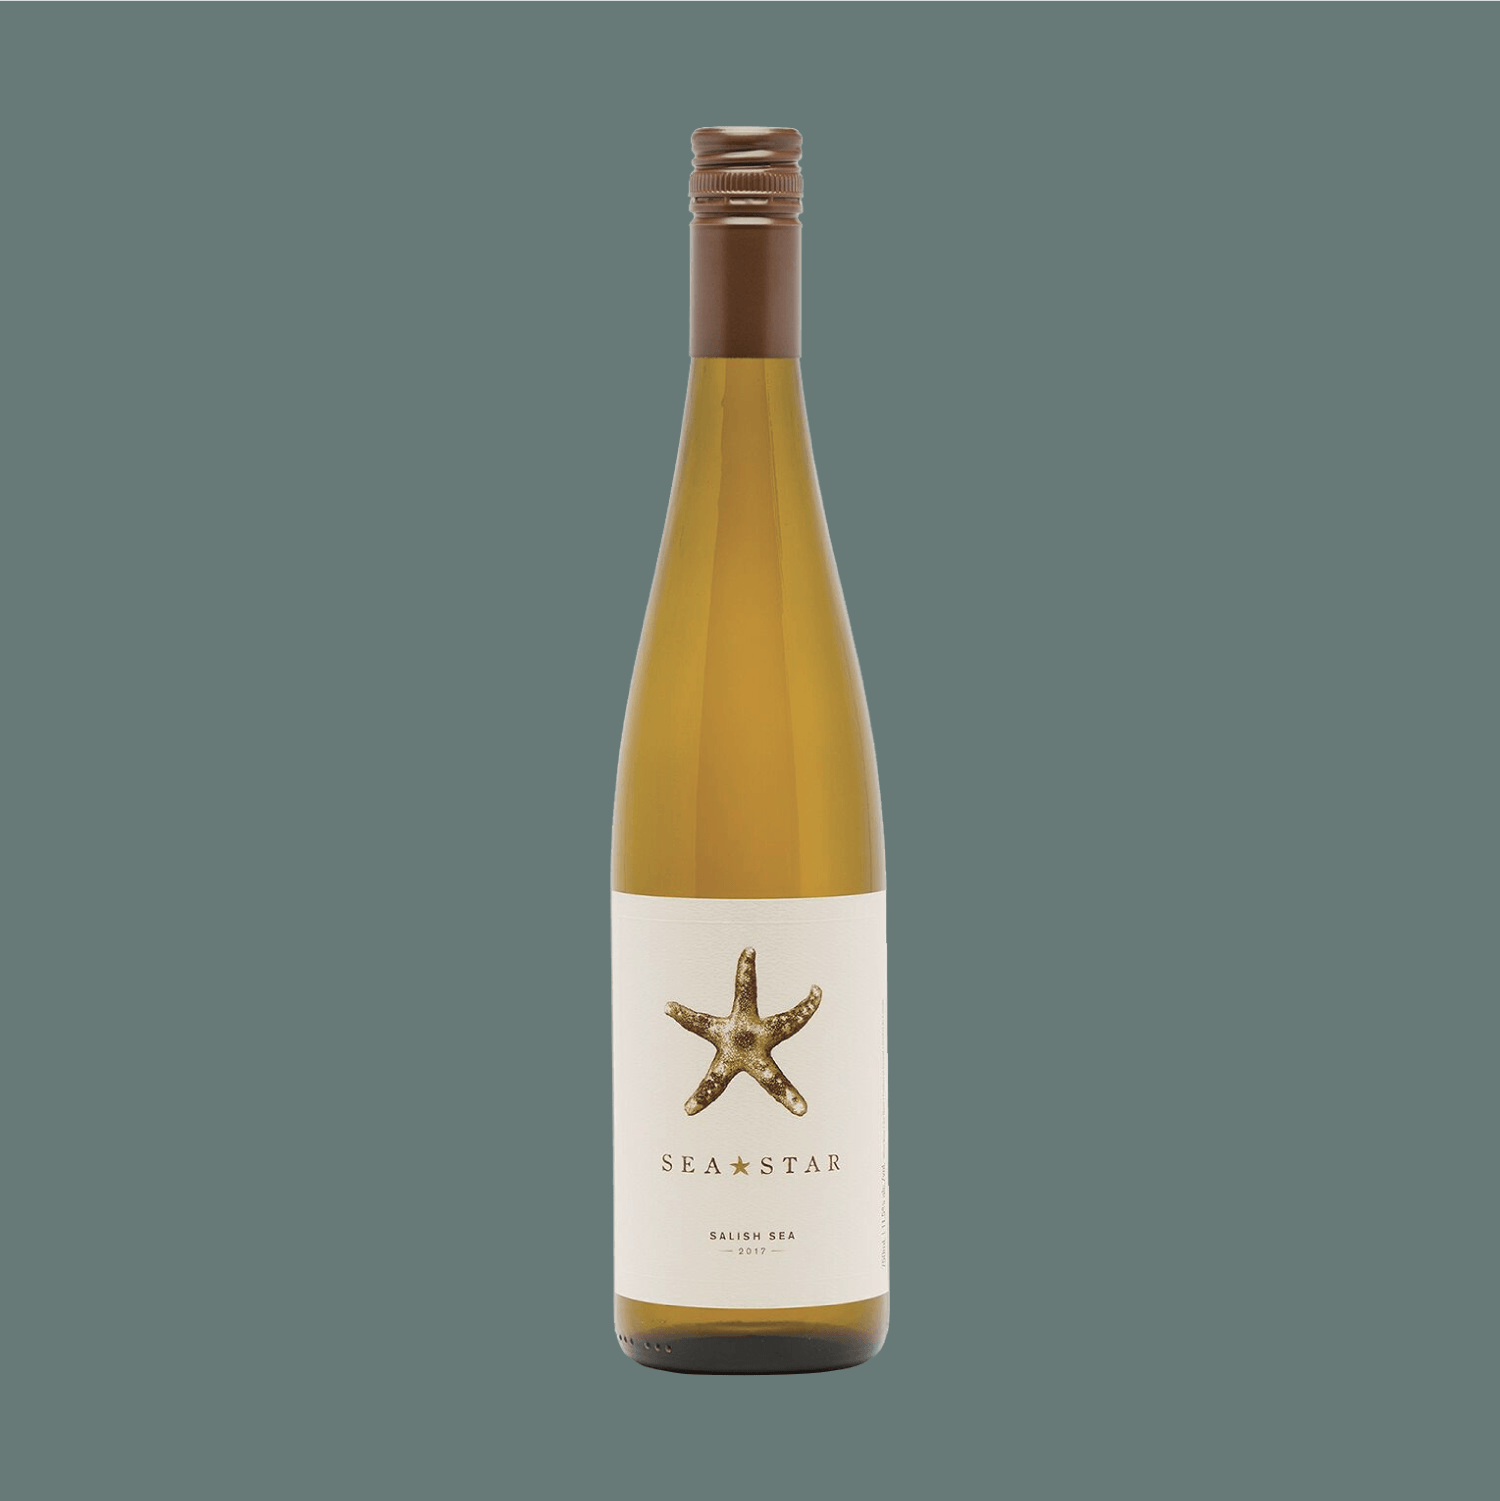 Sea Star Salish Sea - intensely tropical fruit aromatics are balanced by an herbal finish and crisp acidity. This Ortega and Seigerrebe blend is the quintessential island summer wine.$24.99, 750 ml